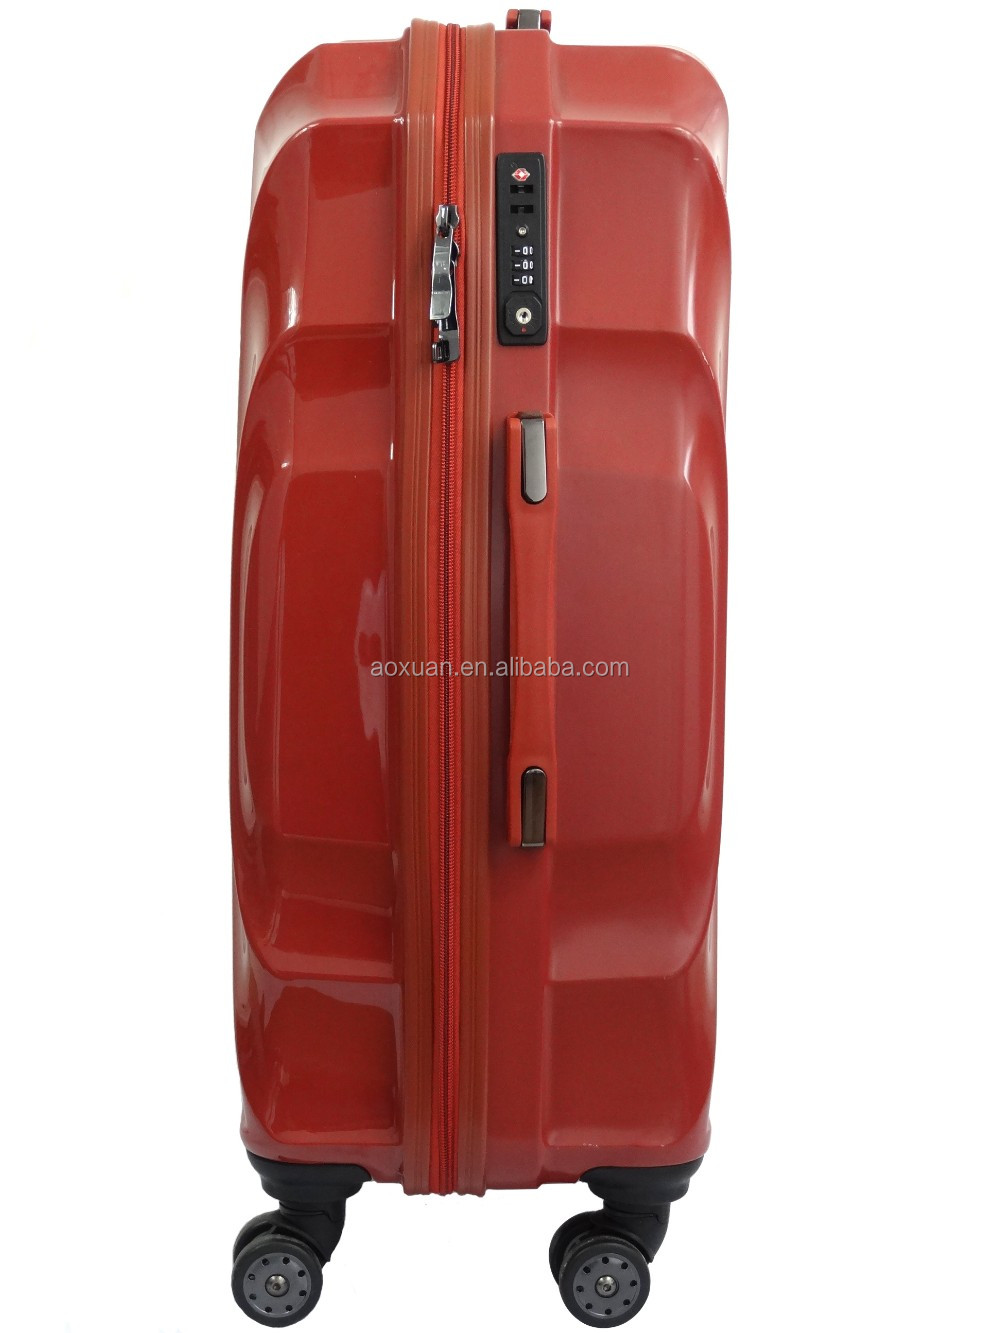 polycarbonate trolley luggage 2016 new mold 100% PC trolley luggage polycarbonate trolley luggage